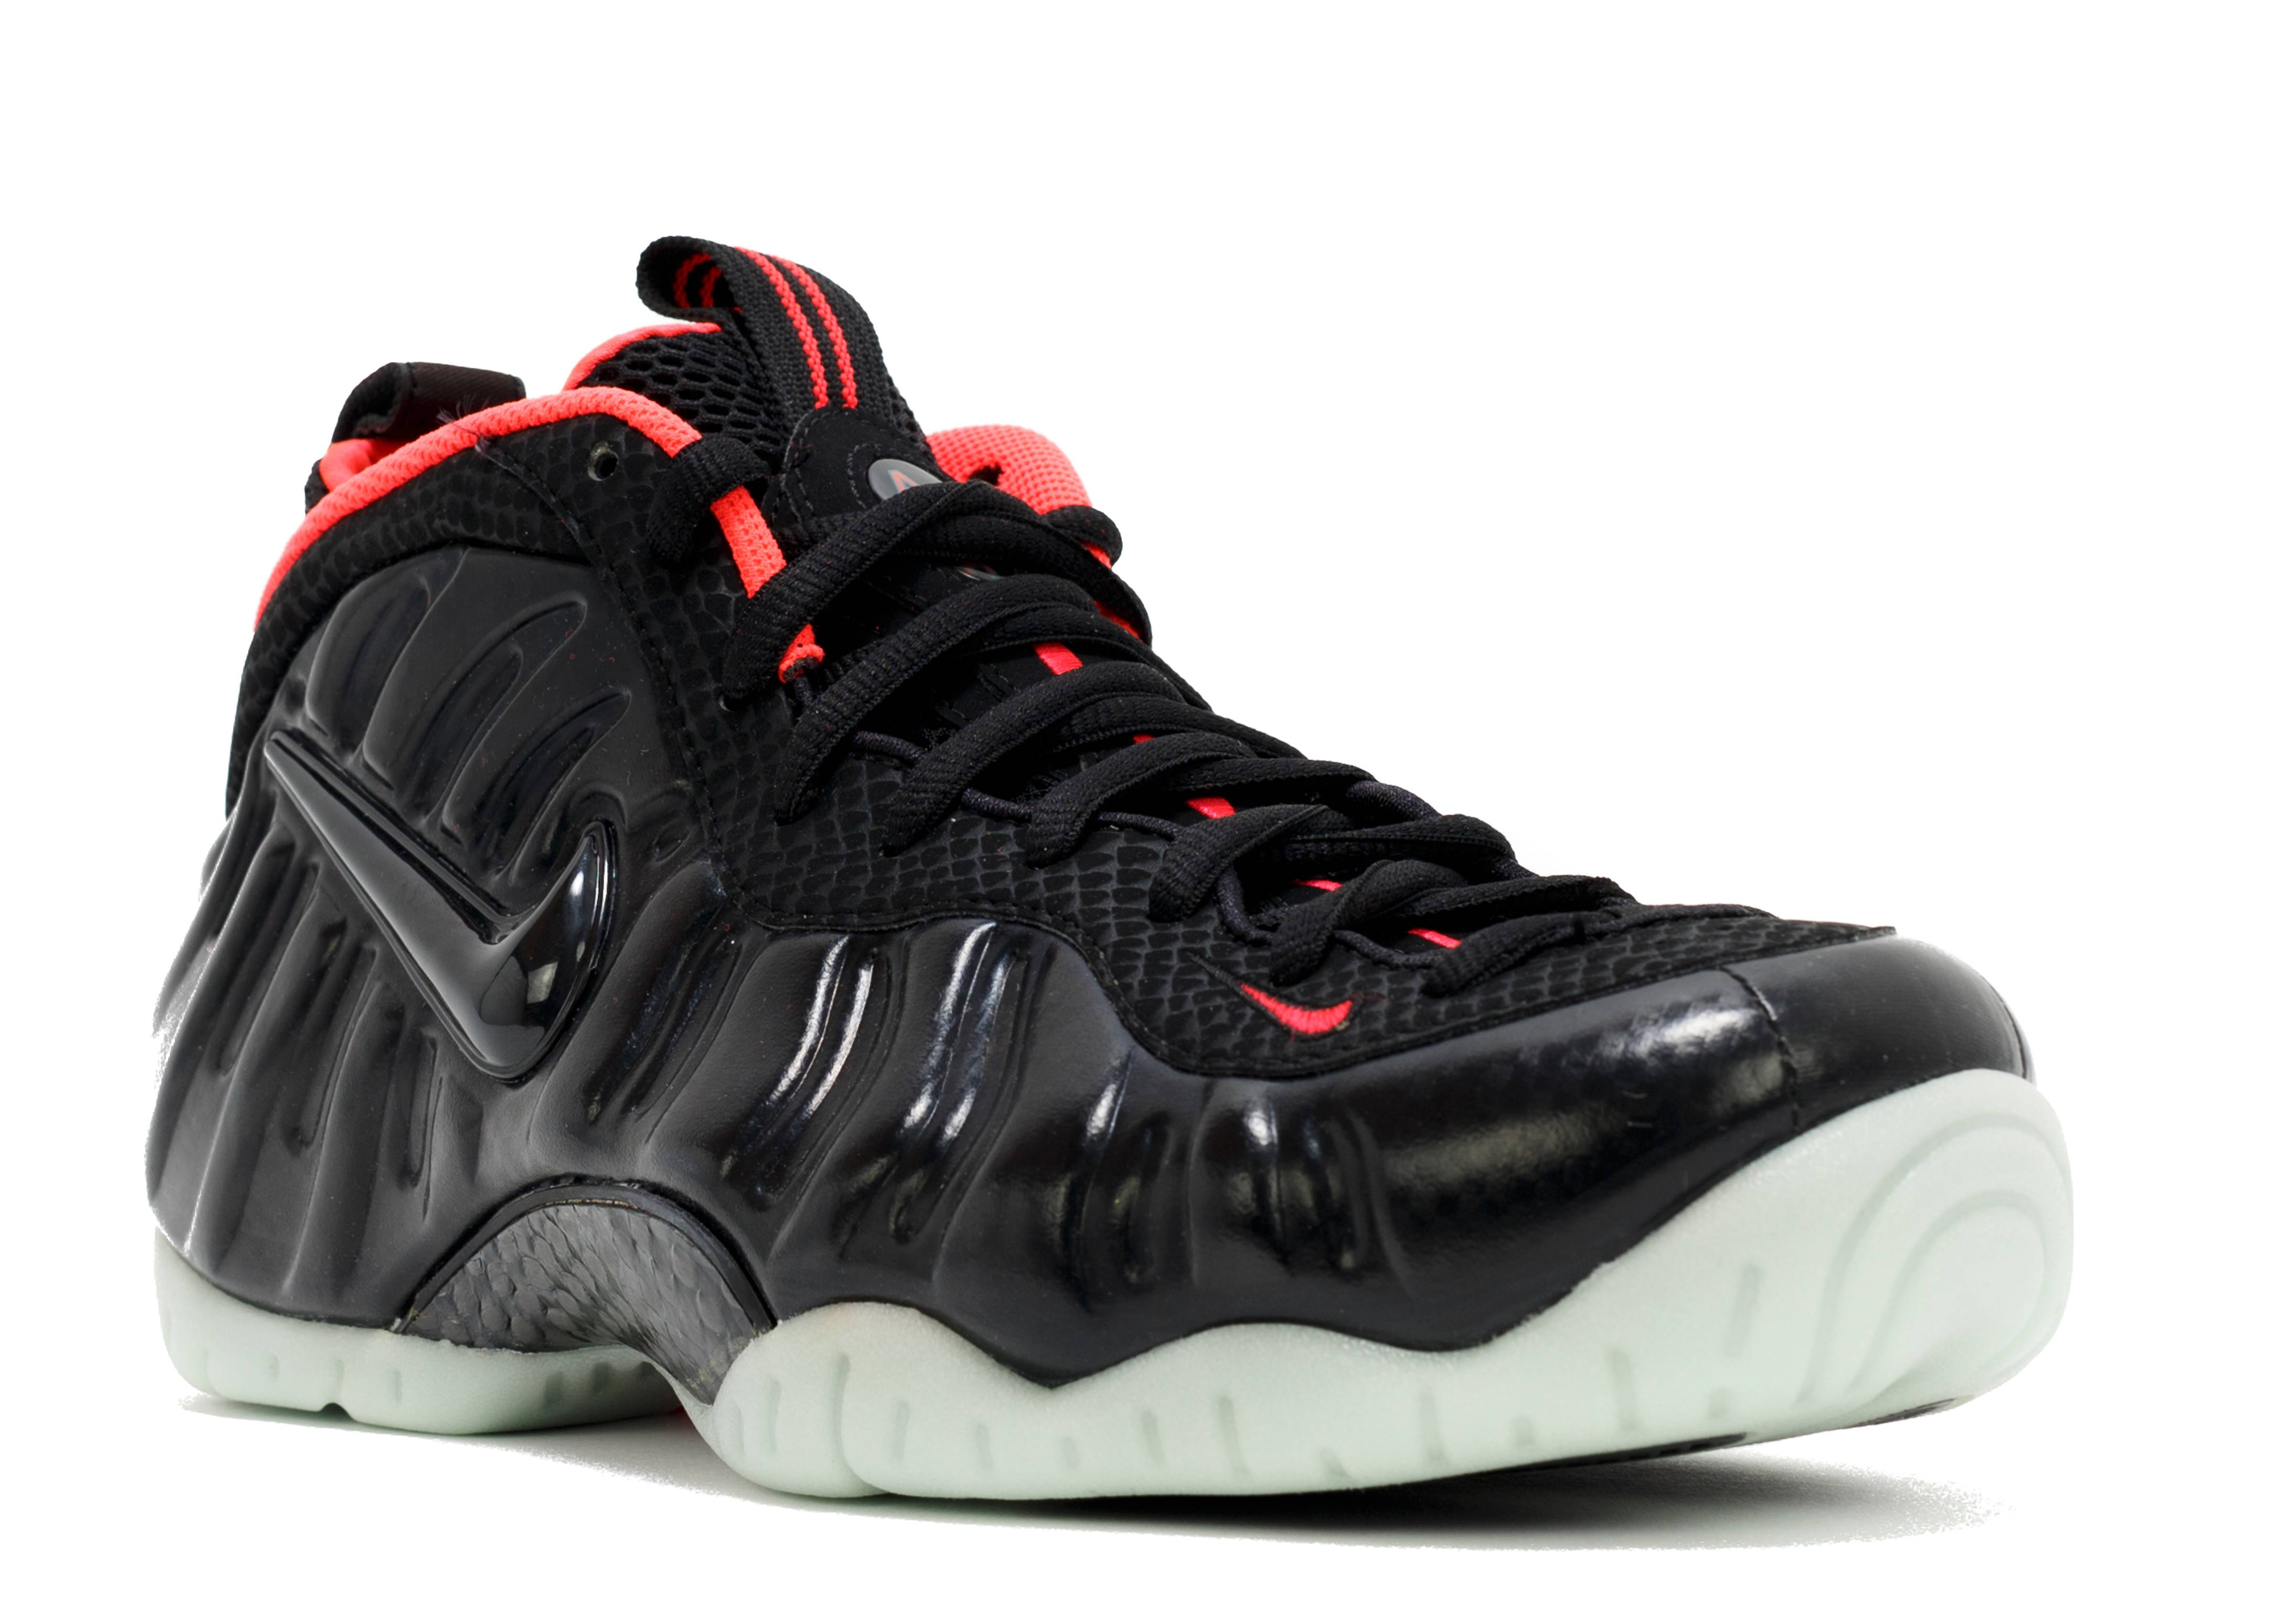 Nike Foamposite Yeezy whitneymcveigh.co.uk